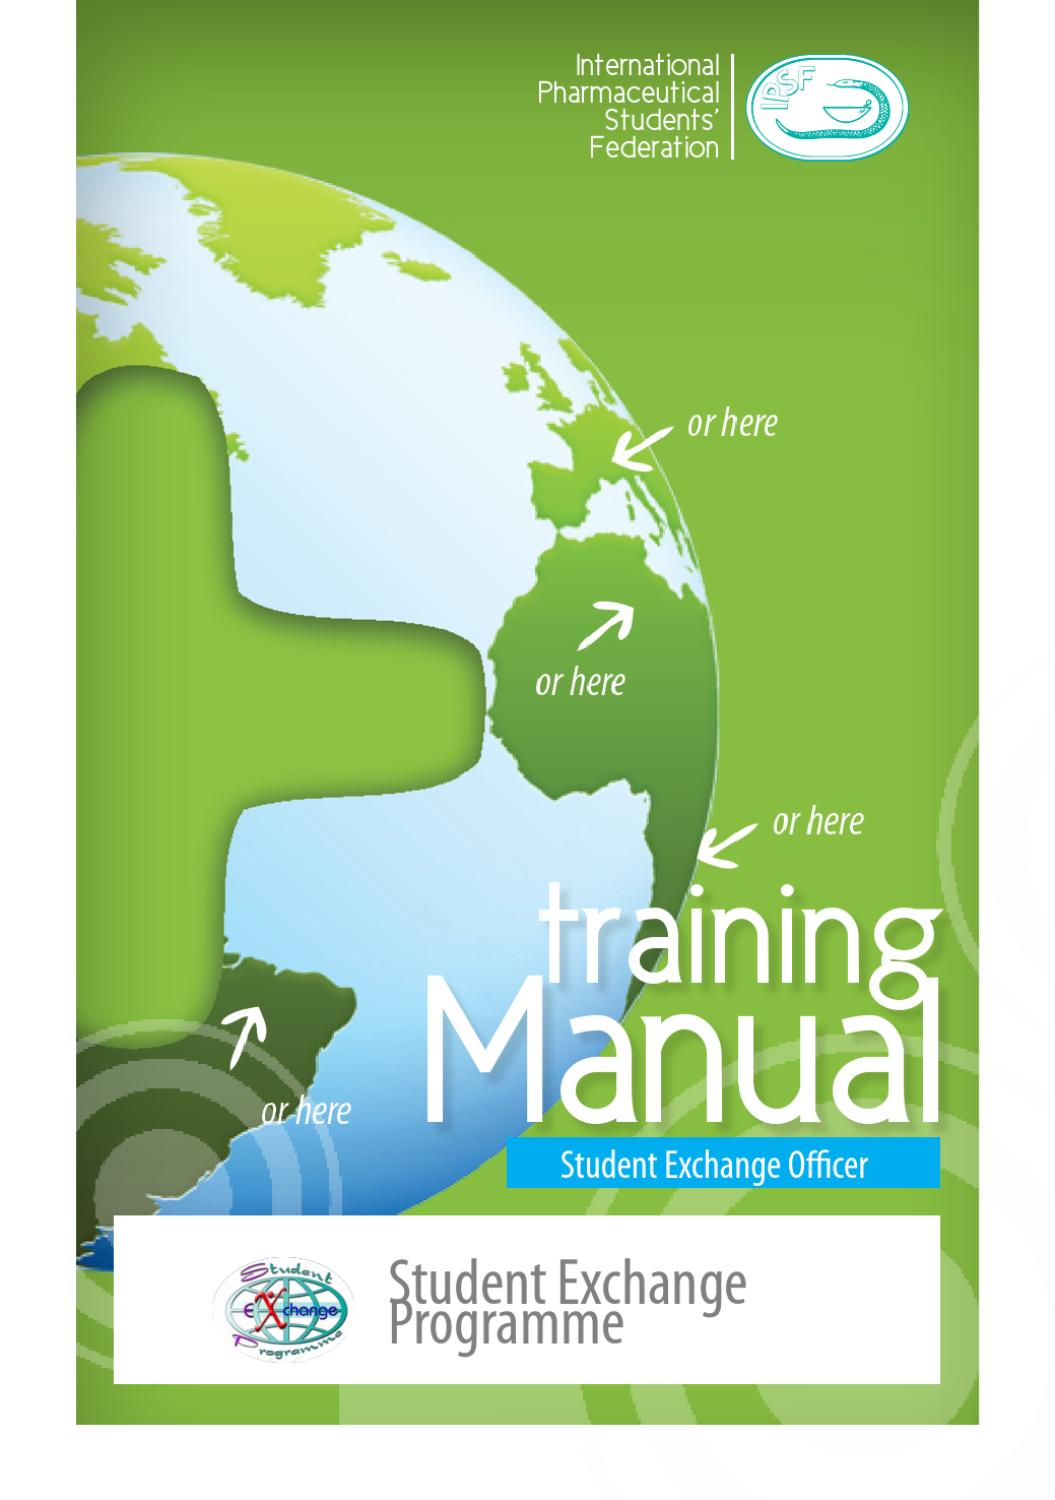 SEO Training Manual 201213 by International Pharmaceutical – Training Manual Cover Page